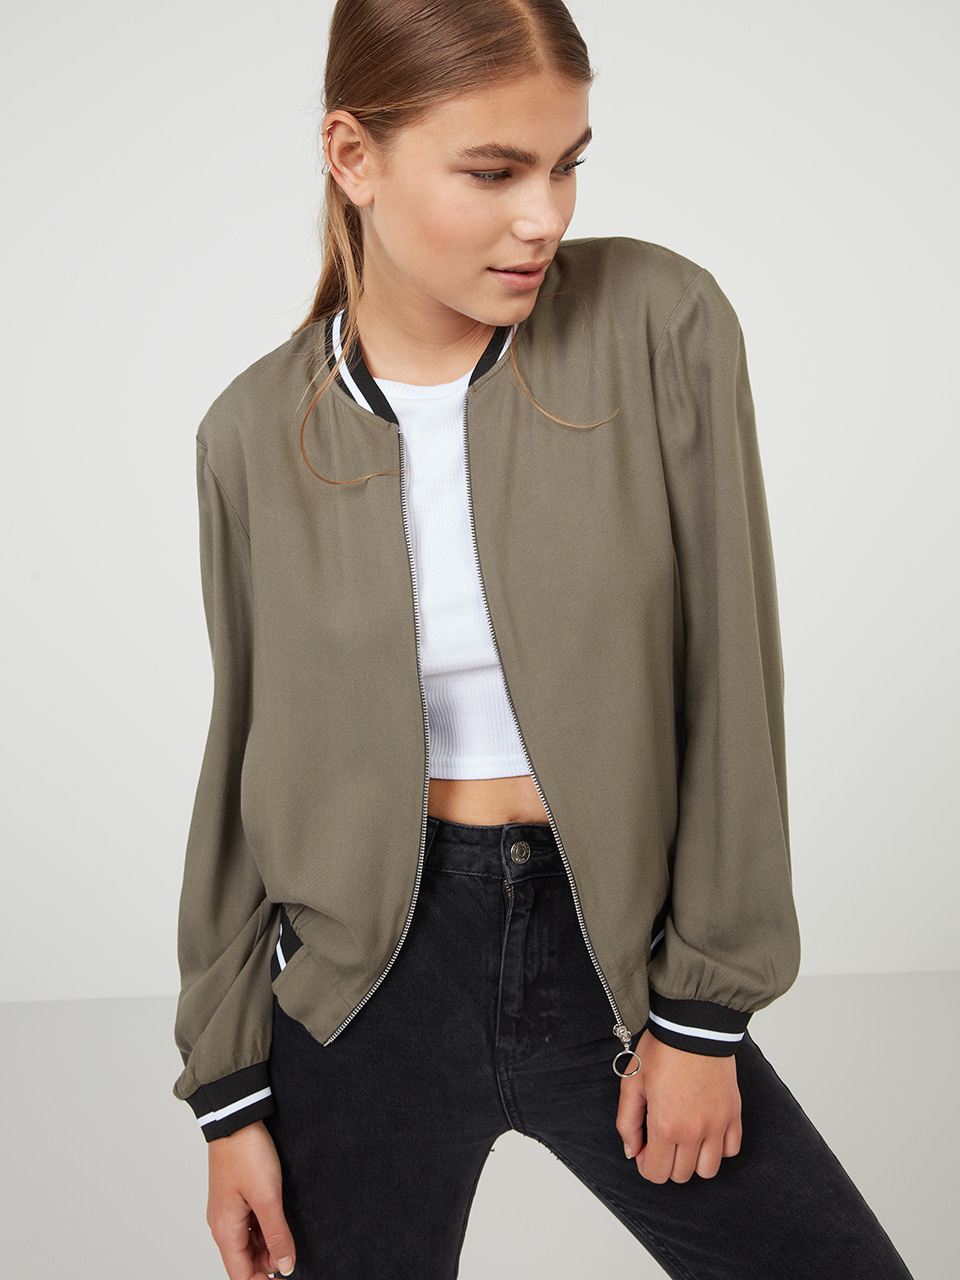 Khaki Sports Rib Bomber Jacket Style out the summer in our Khaki Bomber Jacket, designed for the warmer months ahead with its loosely tailored shape and lightweight construction. Finished in a military green, this shade's not only a catwalk favourite this season, but stays true to the jacket's roots. Throw it over a crop top with slip-on sneakers for an off-beat style statement. Main Fabric: 100% viscose - Trim 75% poly 25% elastane Lining: 100% polyester Item No. 72349